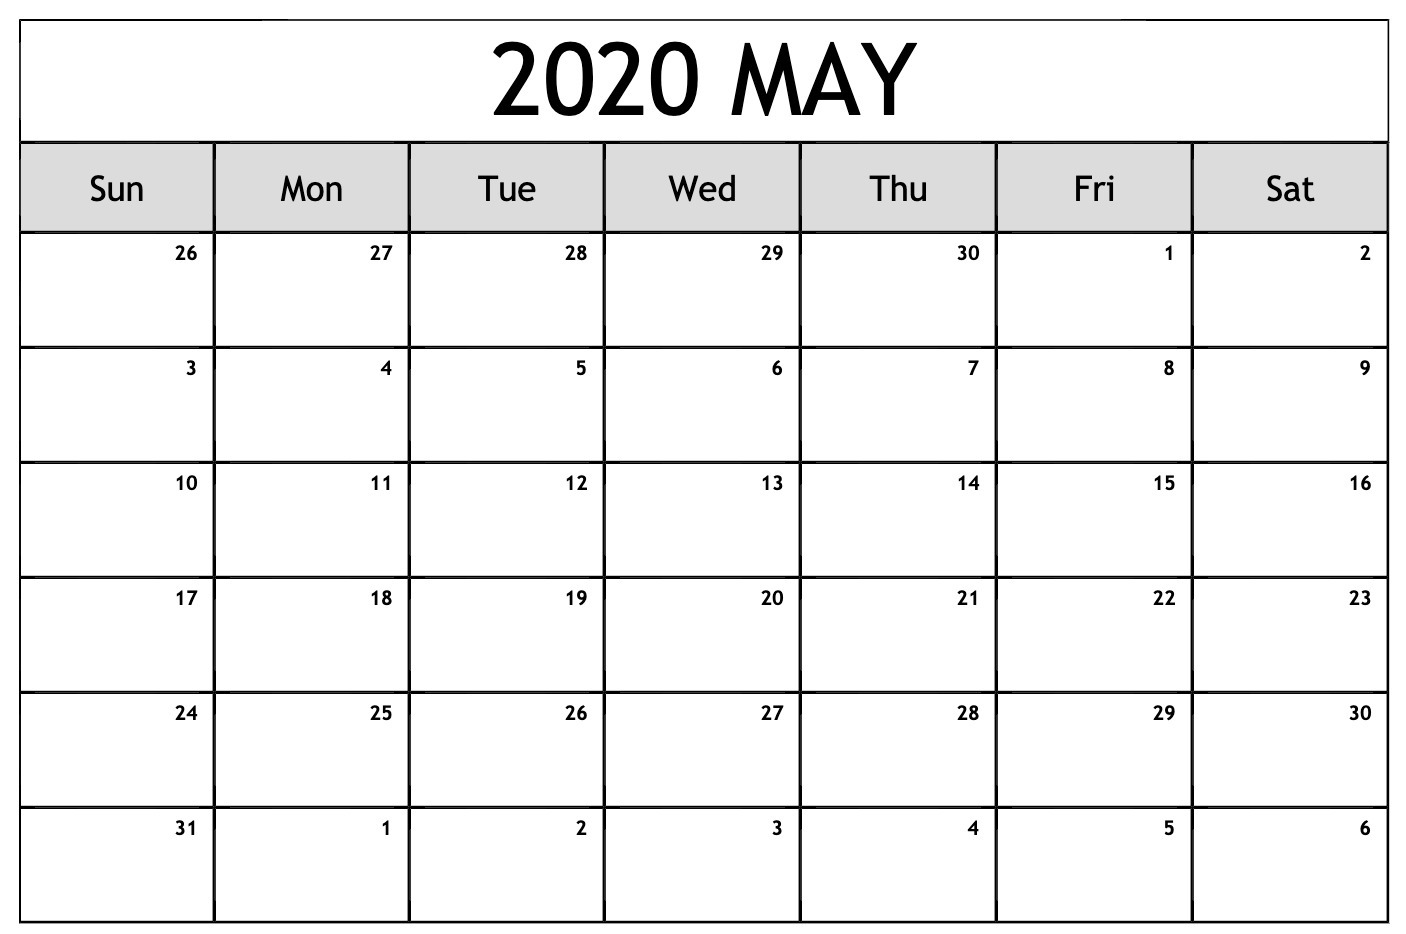 May 2020 Calendar Printable.May 2020 Calendar Printable Blank Template Pdf Word Excel